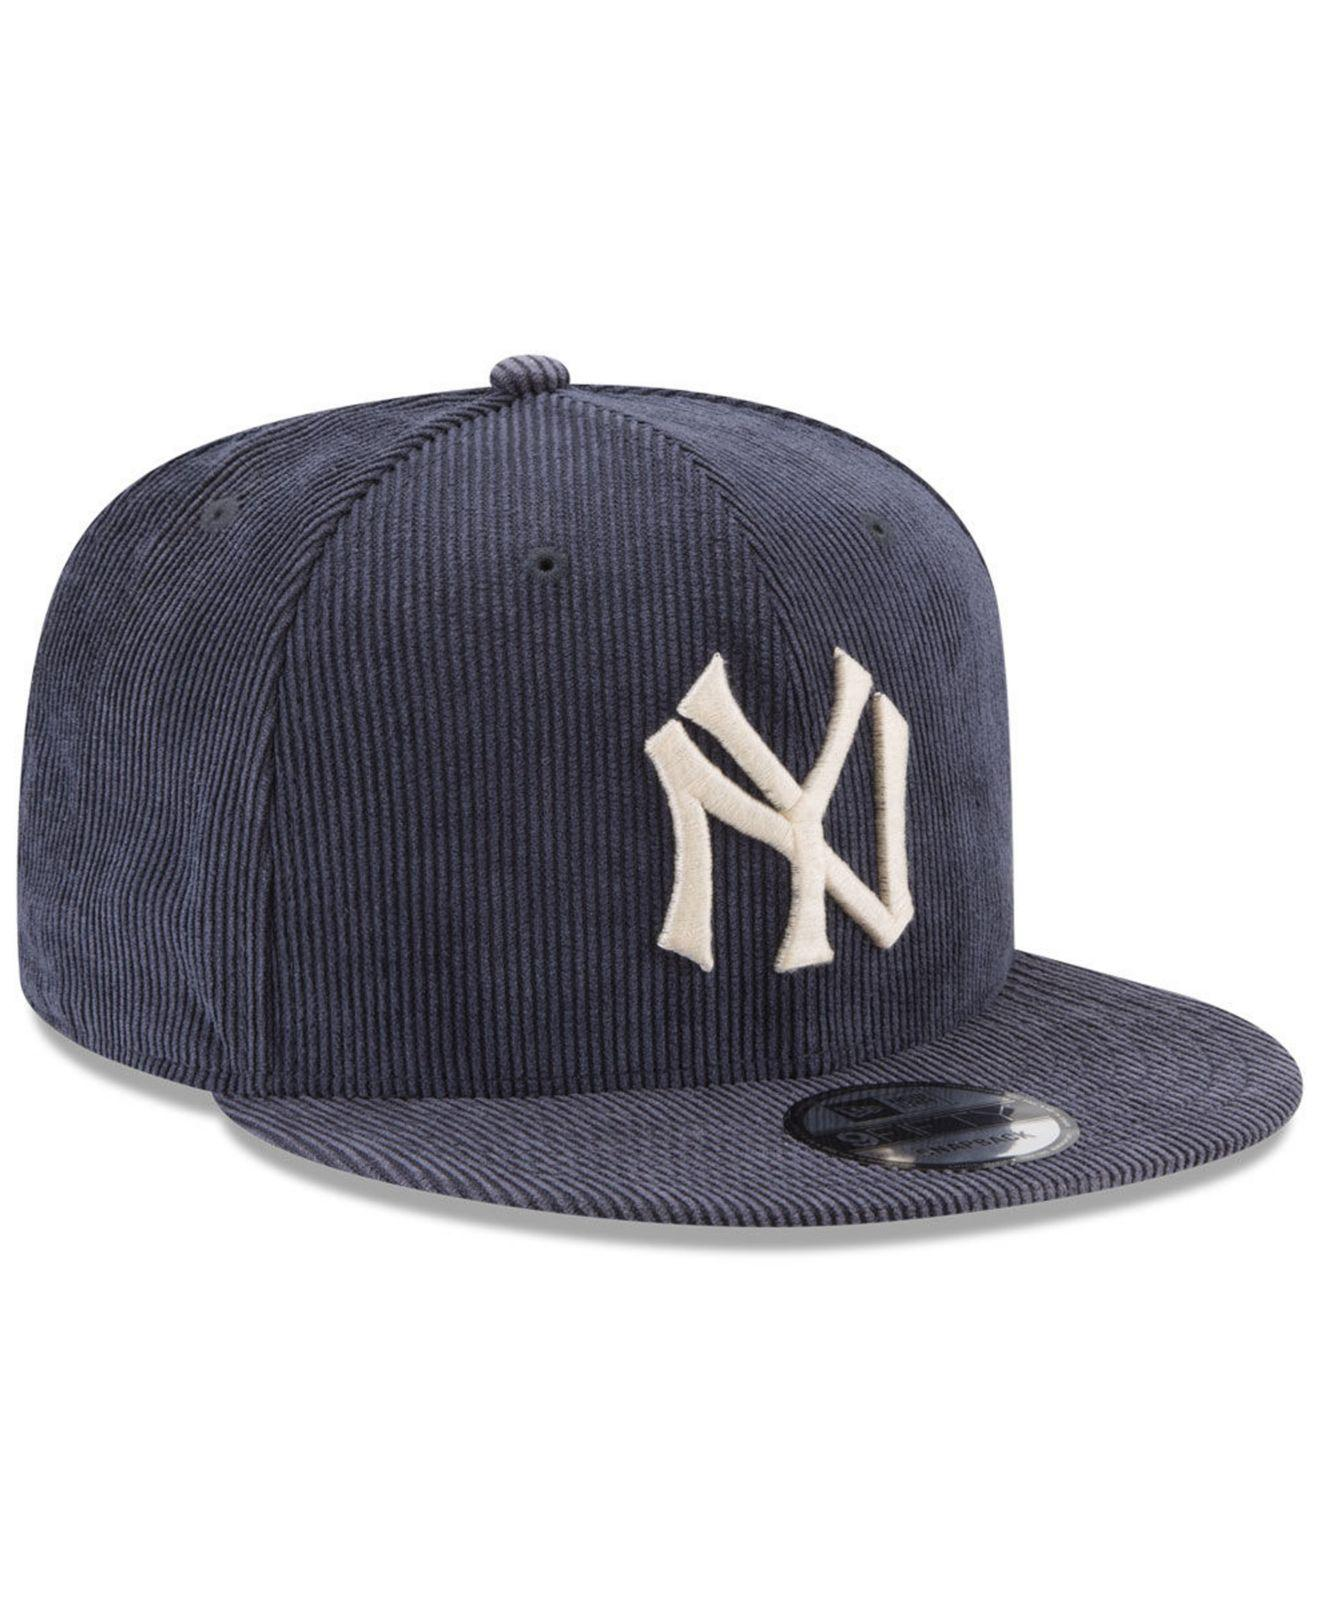 0df8f294 KTZ New York Yankees All Cooperstown Corduroy 9fifty Snapback Cap in ...